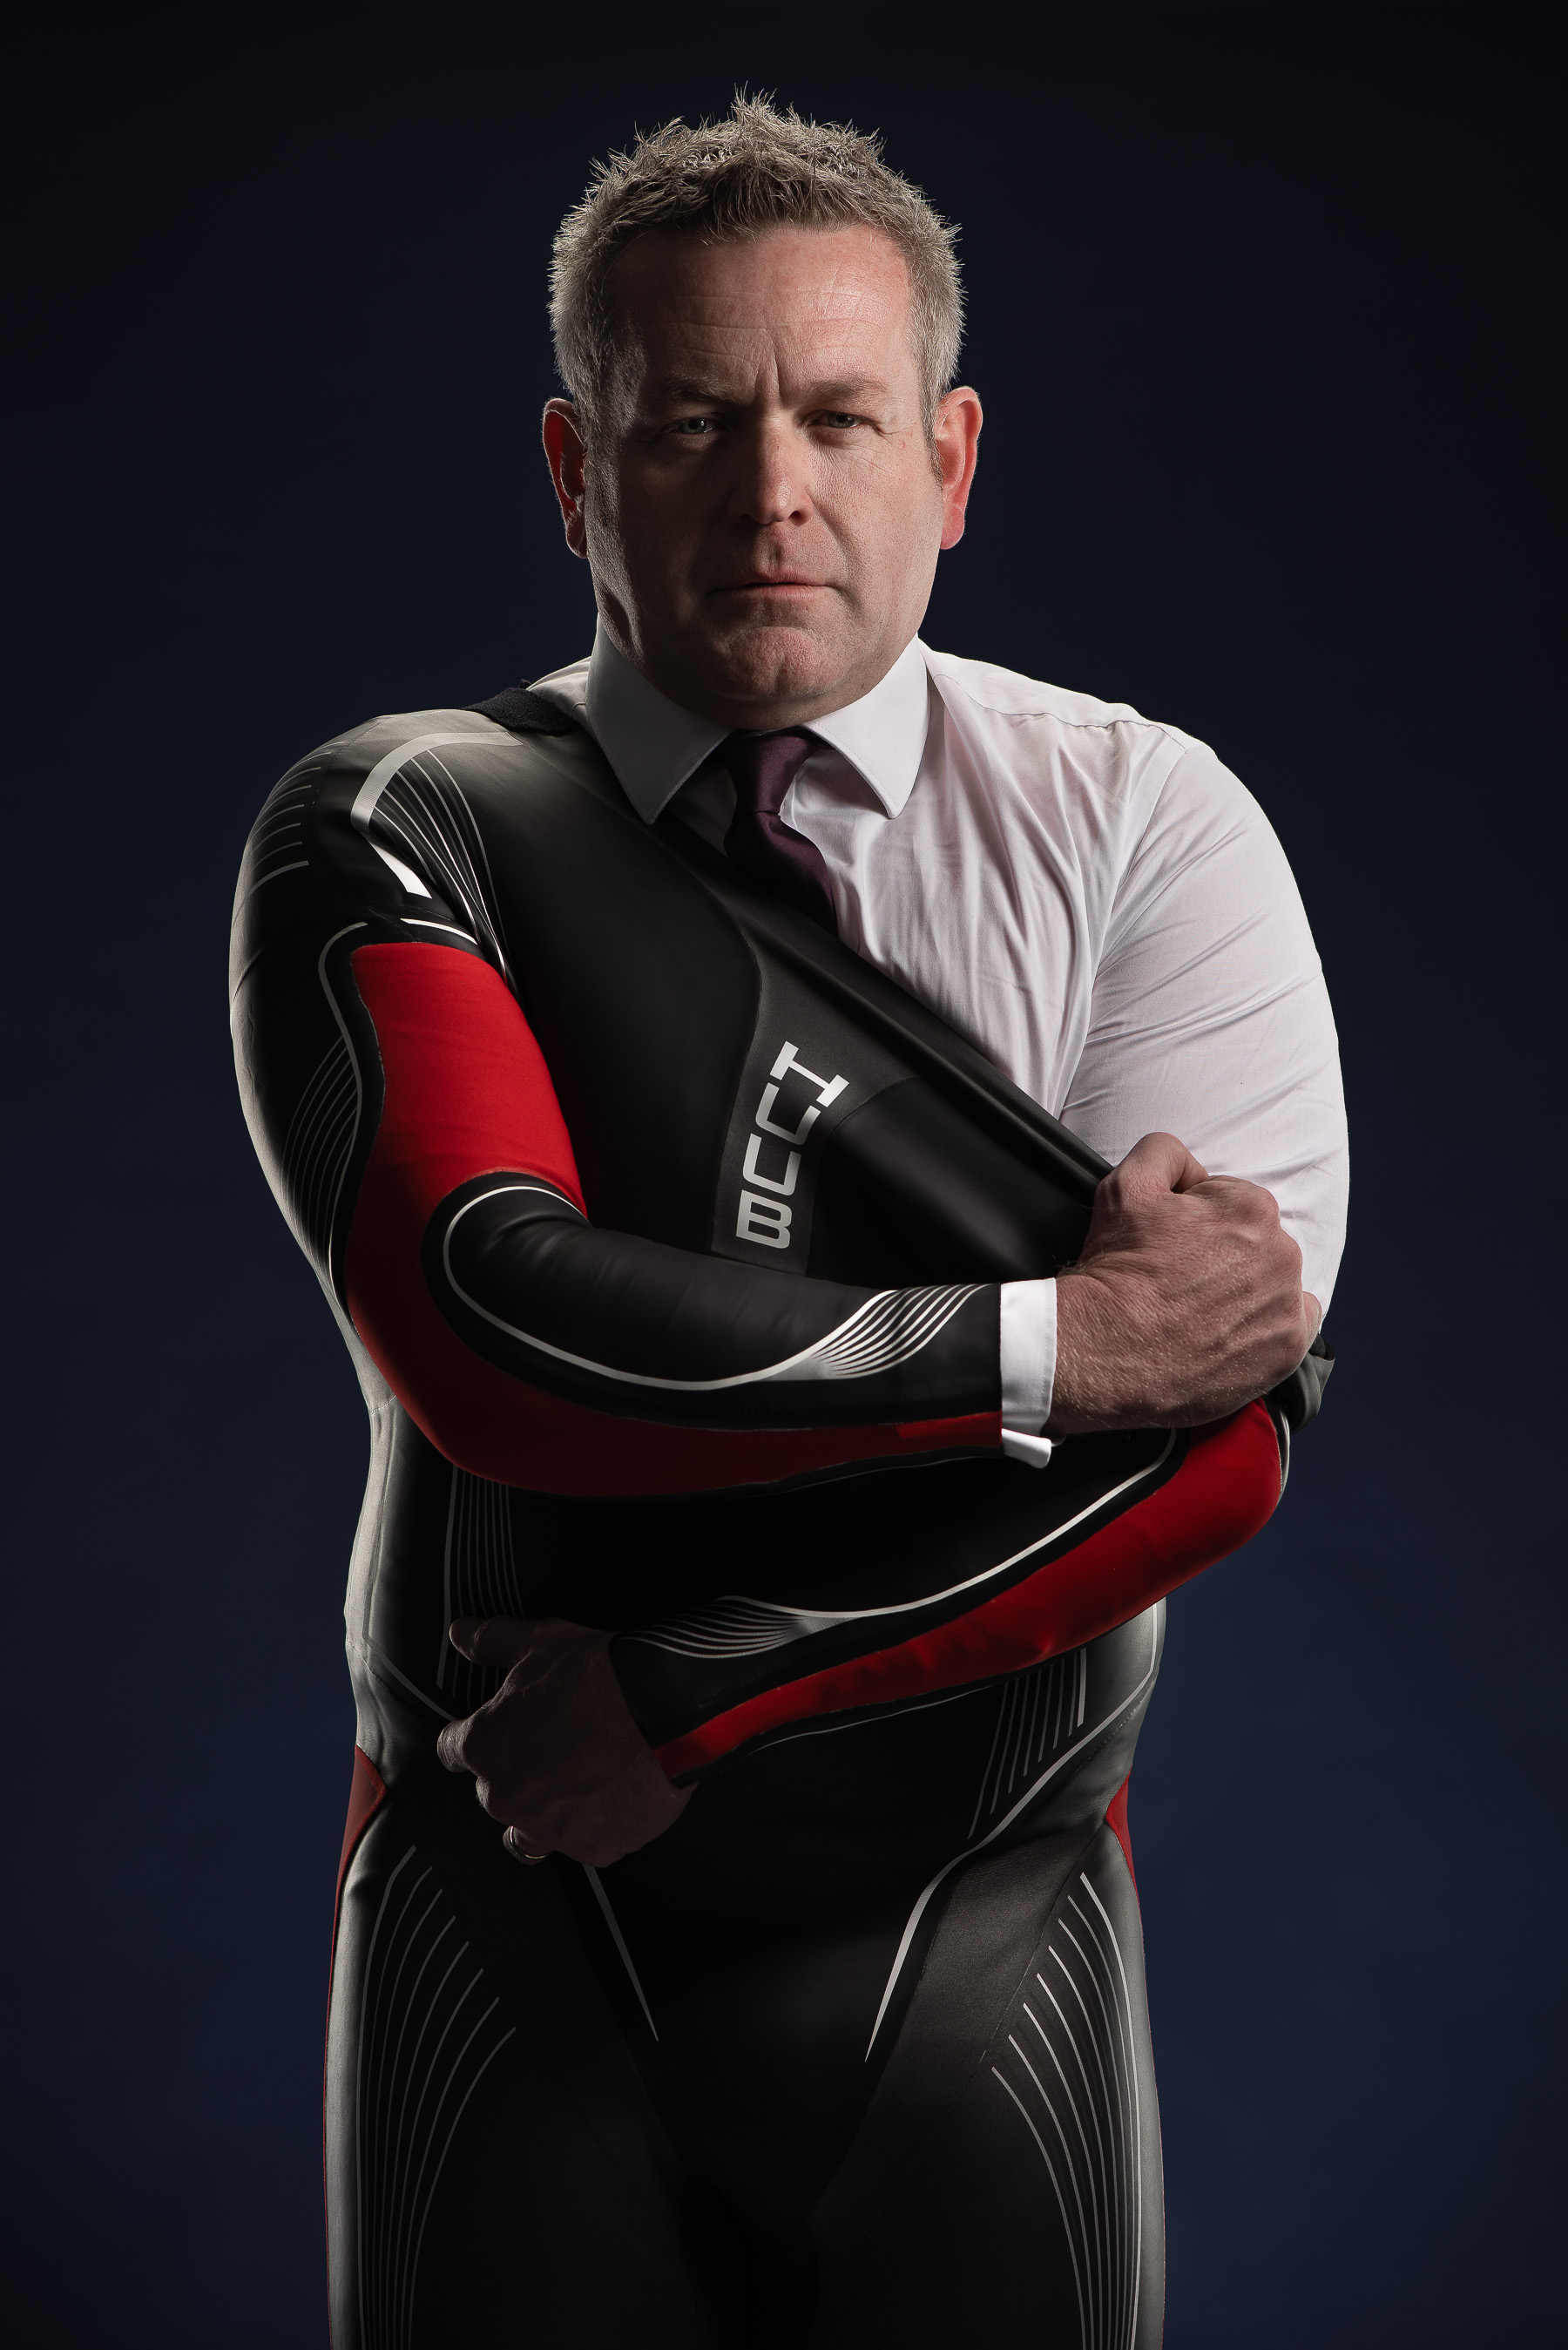 Dean Jackson owner of HUUB ripping off wetsuit to reveal shirt and tie. Photographed on a dark navy background.